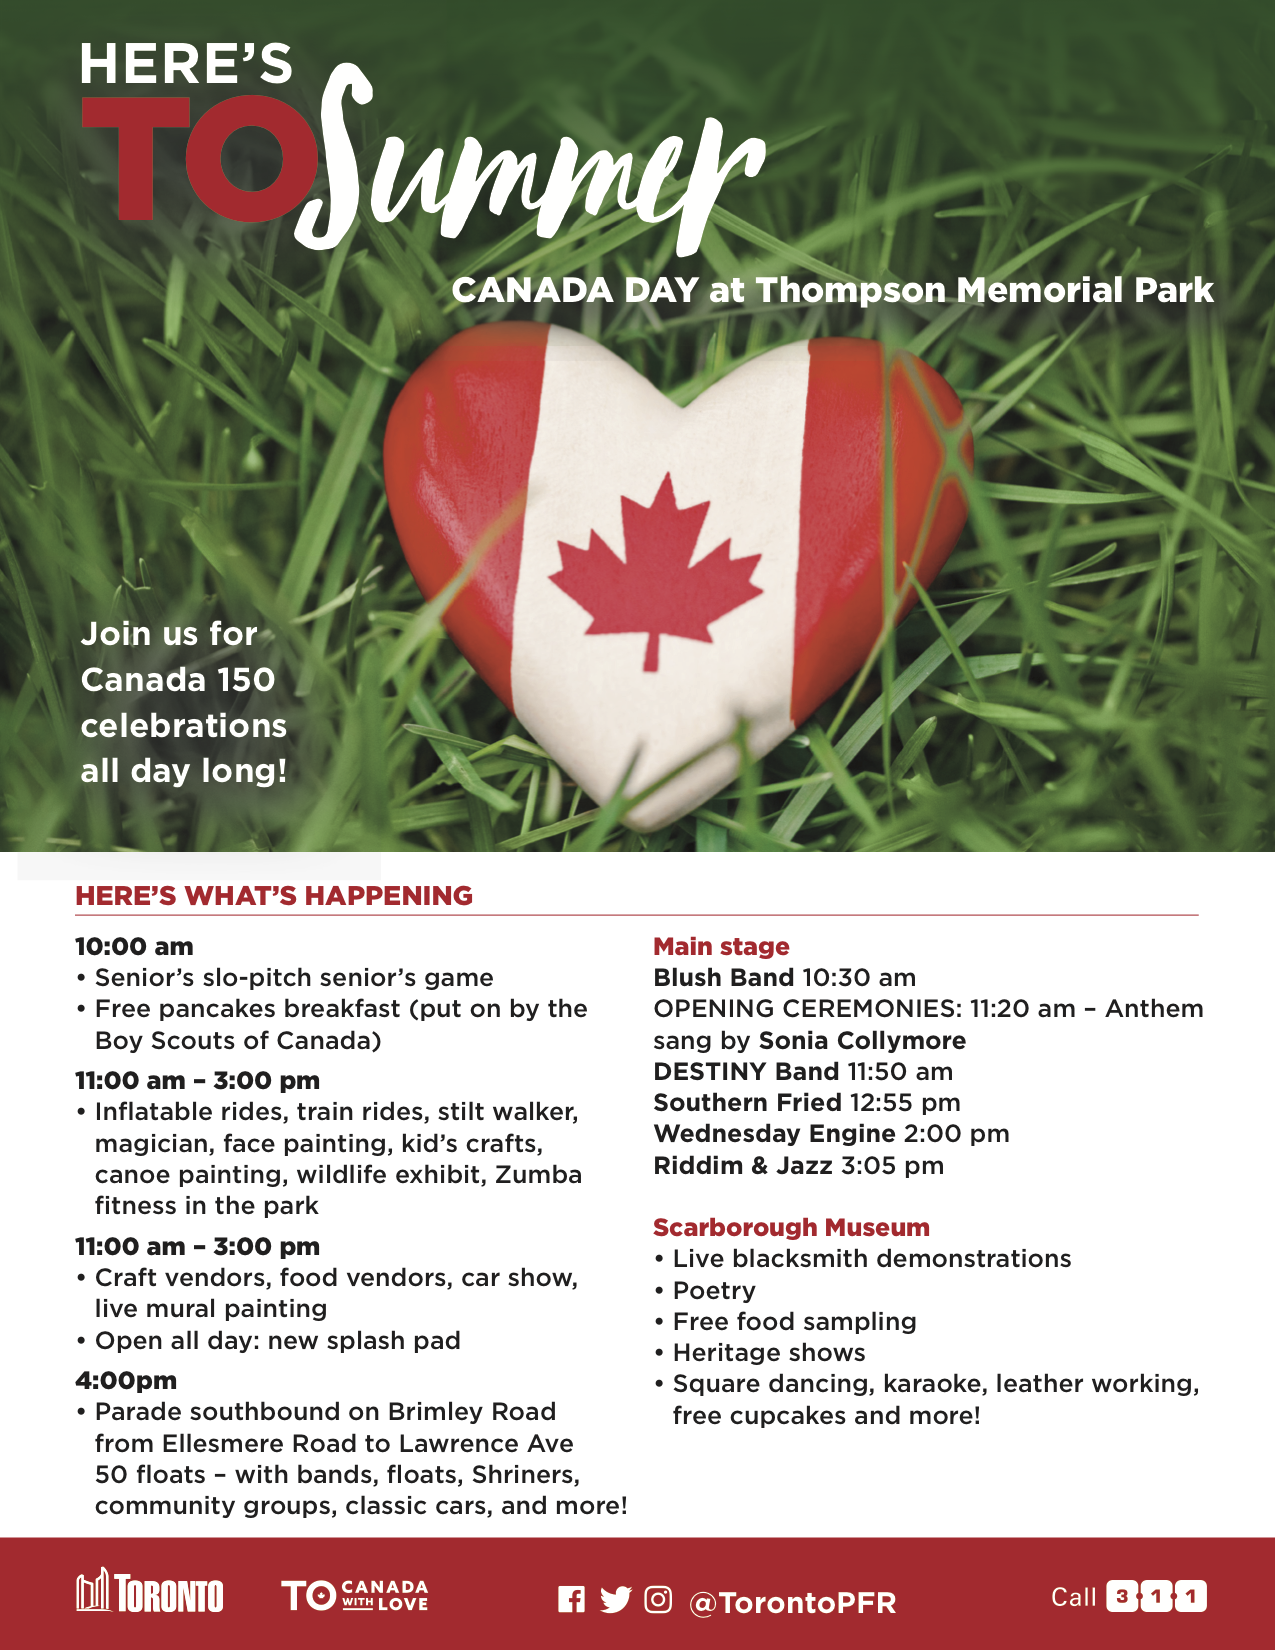 Live Music for Canada Day at Thompson Memorial Park: Riddim & Jazz Crew